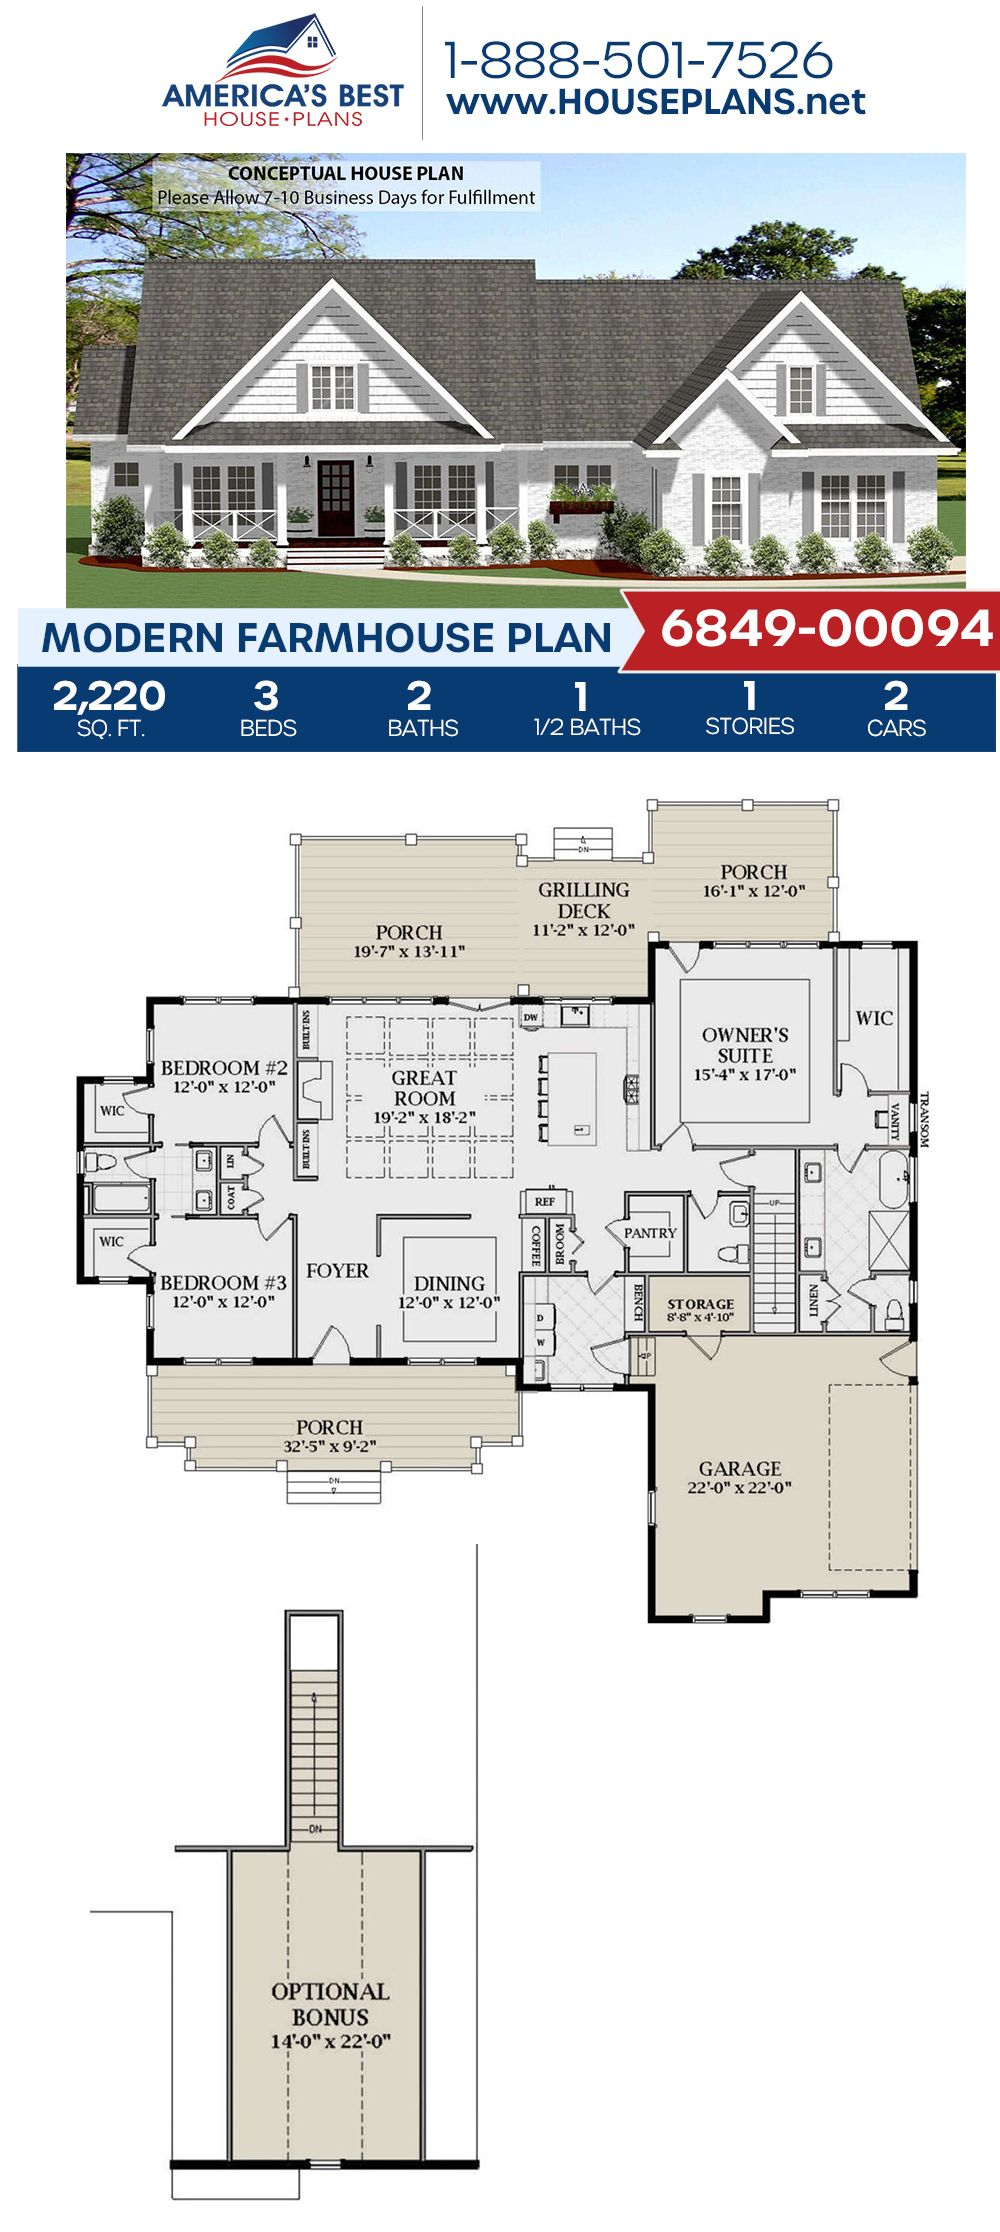 House Plan 6849 00094 Modern Farmhouse Plan 2 220 Square Feet 3 Bedrooms 2 5 Bathrooms House Plans Farmhouse Modern Farmhouse Plans Farmhouse Plans